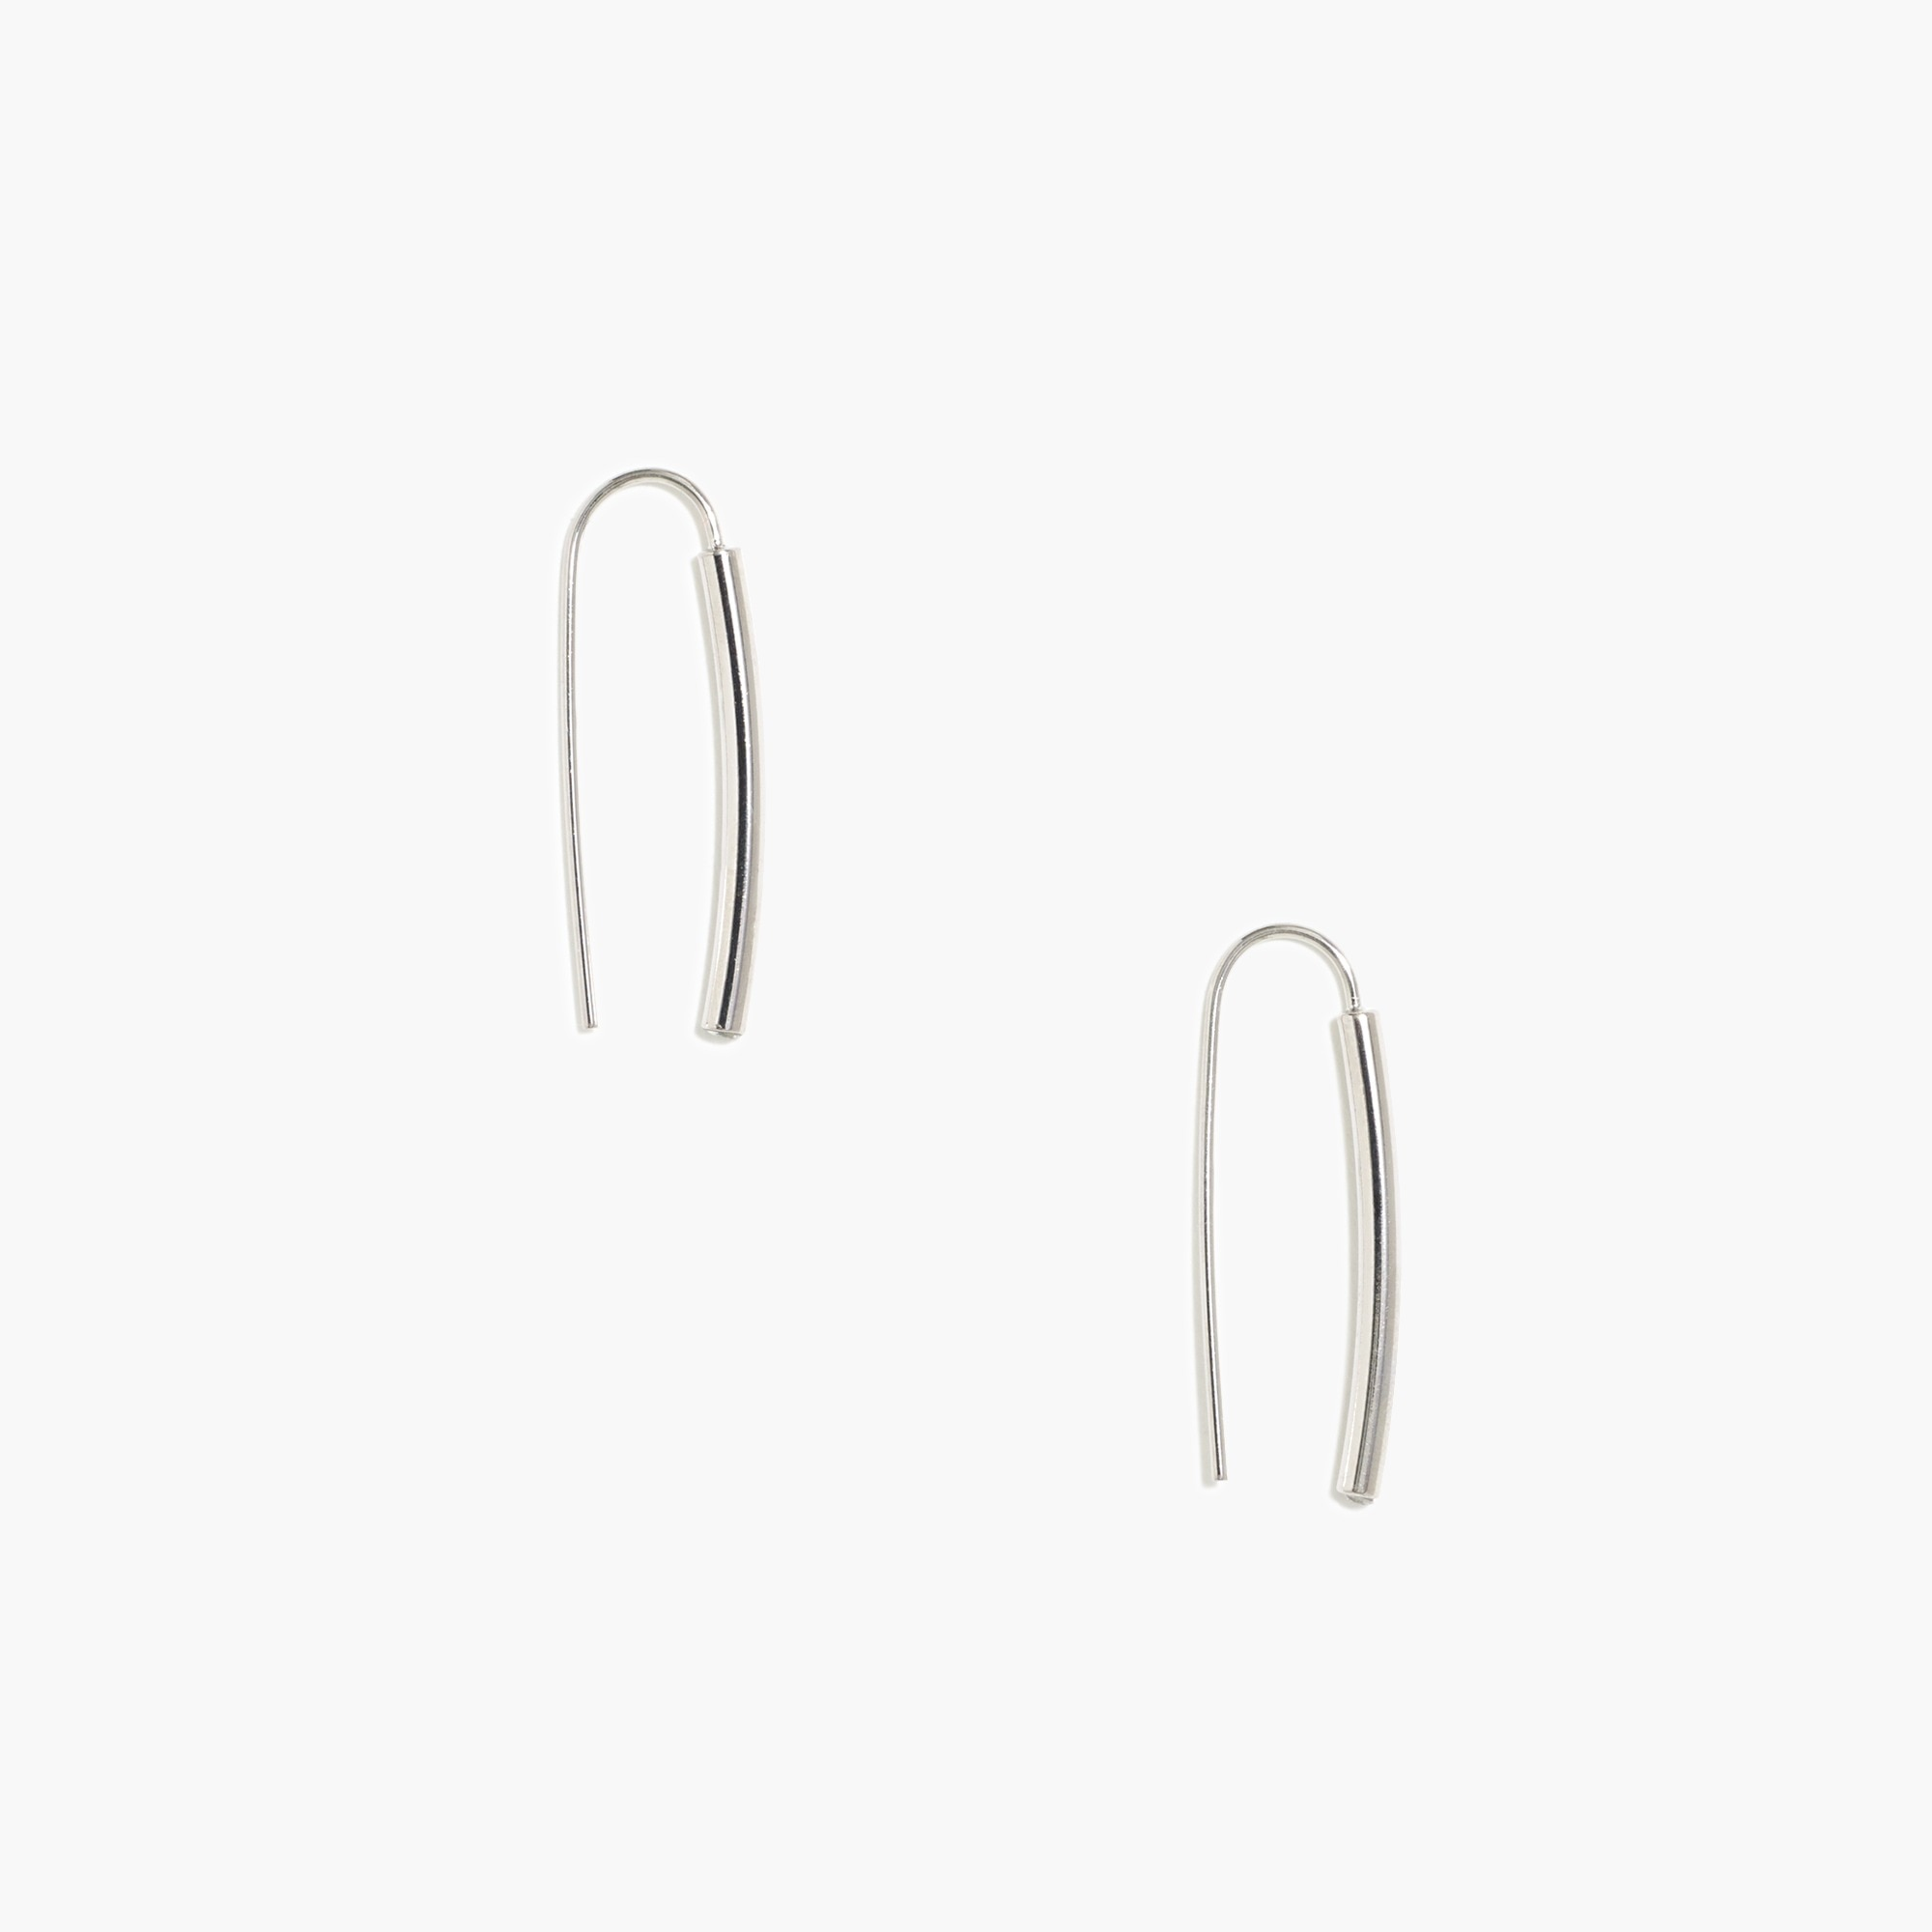 Image 2 for Hook earrings